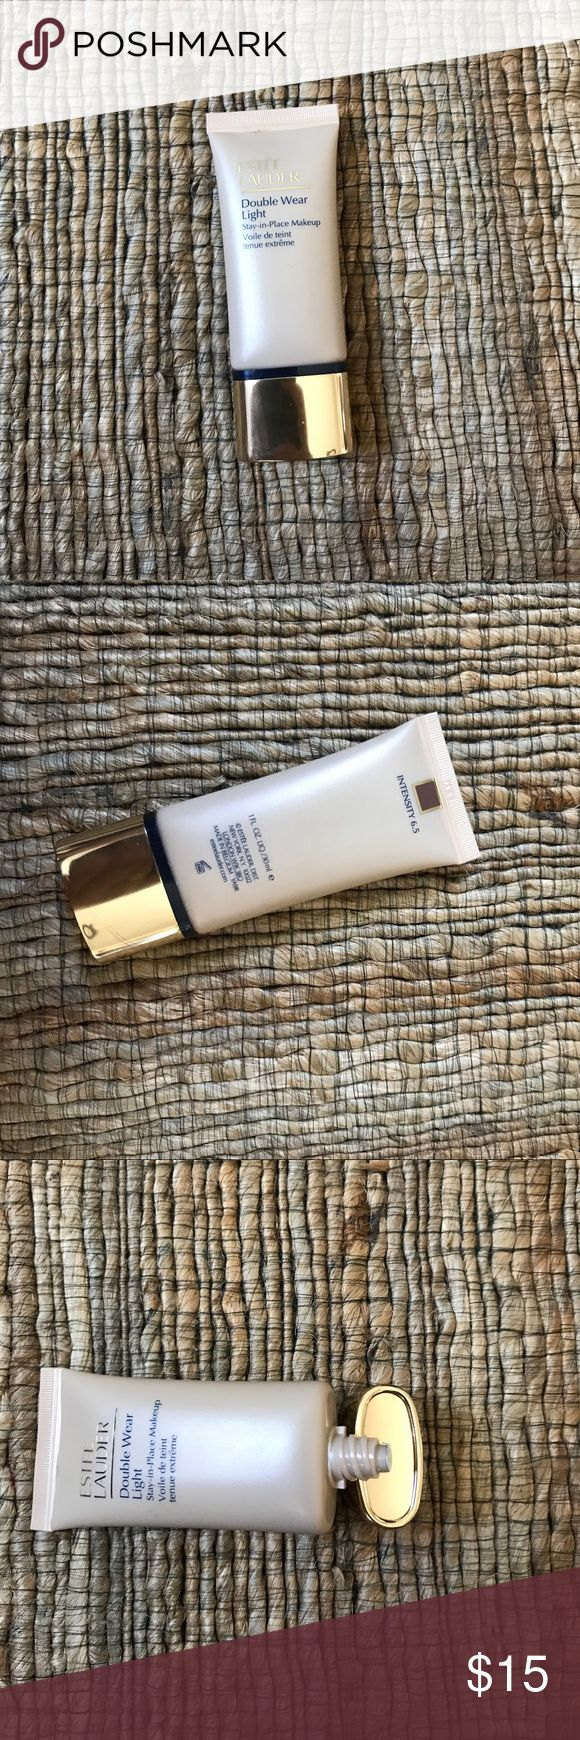 Estée Lauder double wear light foundation Estée Lauder double wear light foundation shade 6.5 Estee Lauder Makeup Foundation